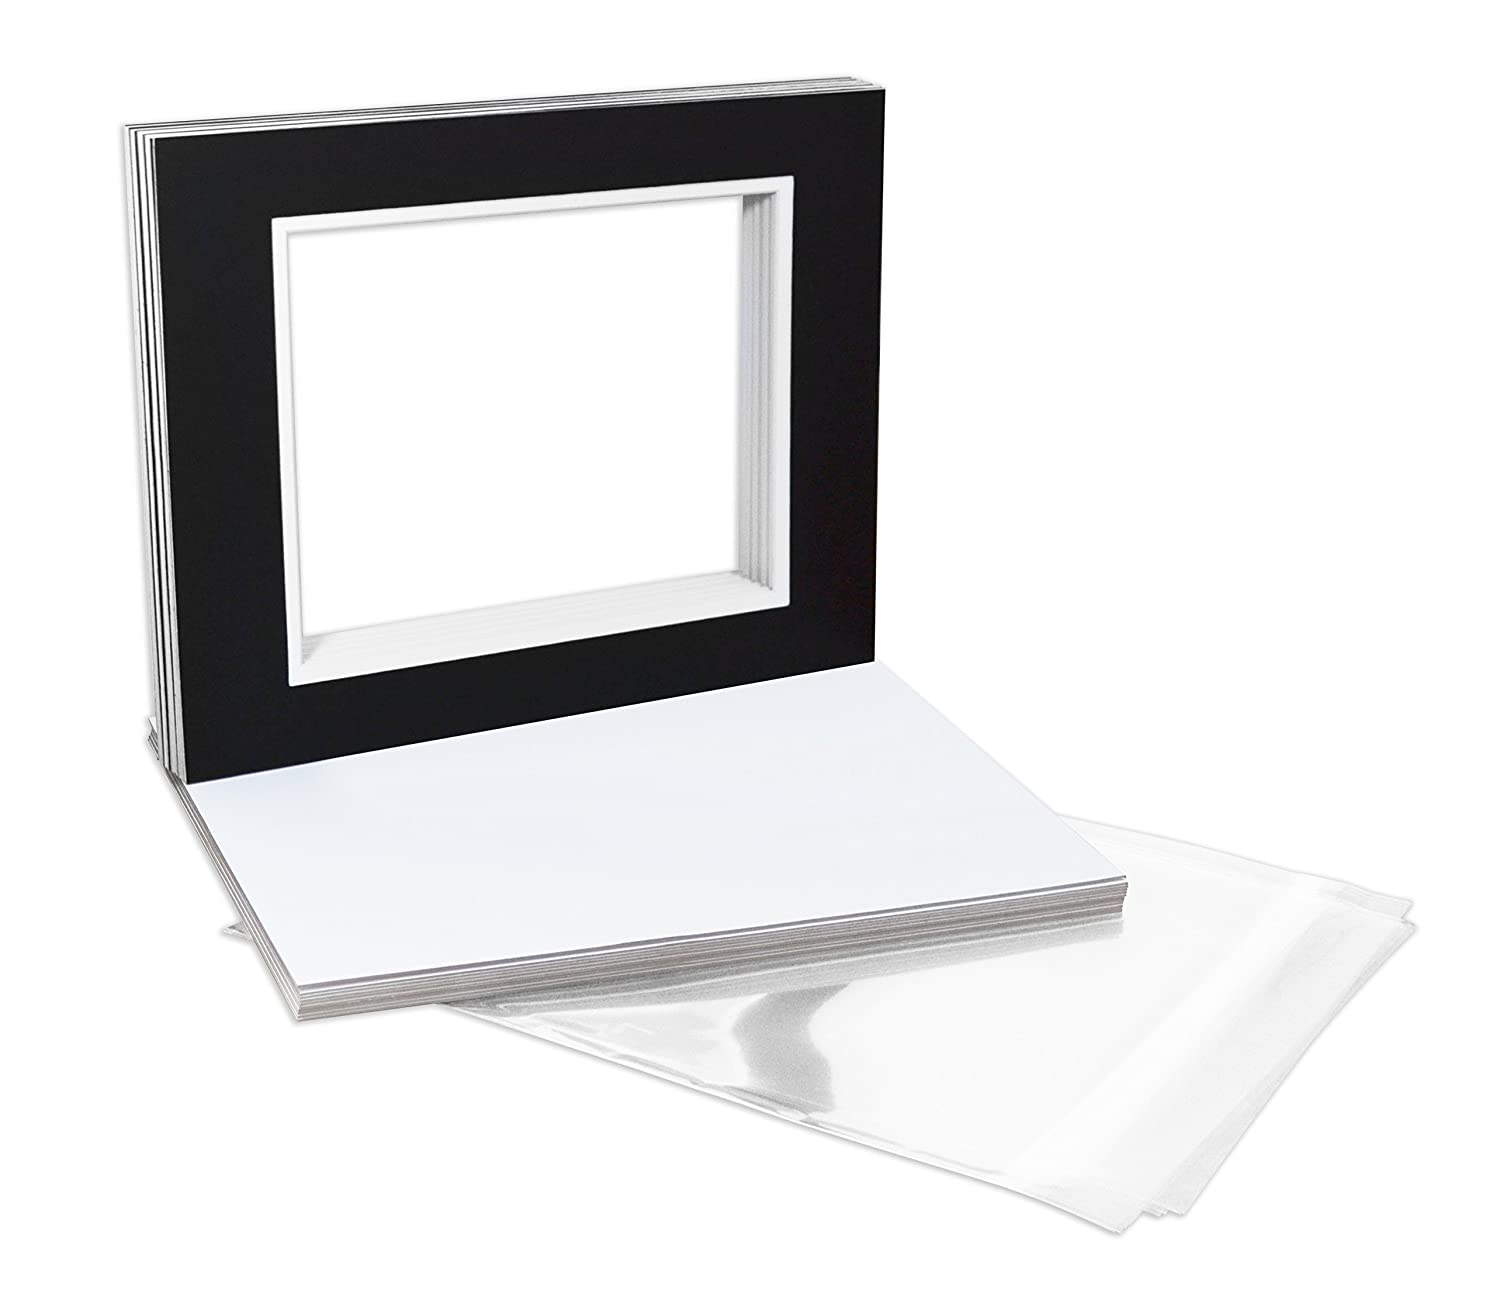 Golden State Art Pack of 10, Double Mats 11x14 Core Bevel Cut for 8x10 Pictures + Backing + Bags, Black Over White